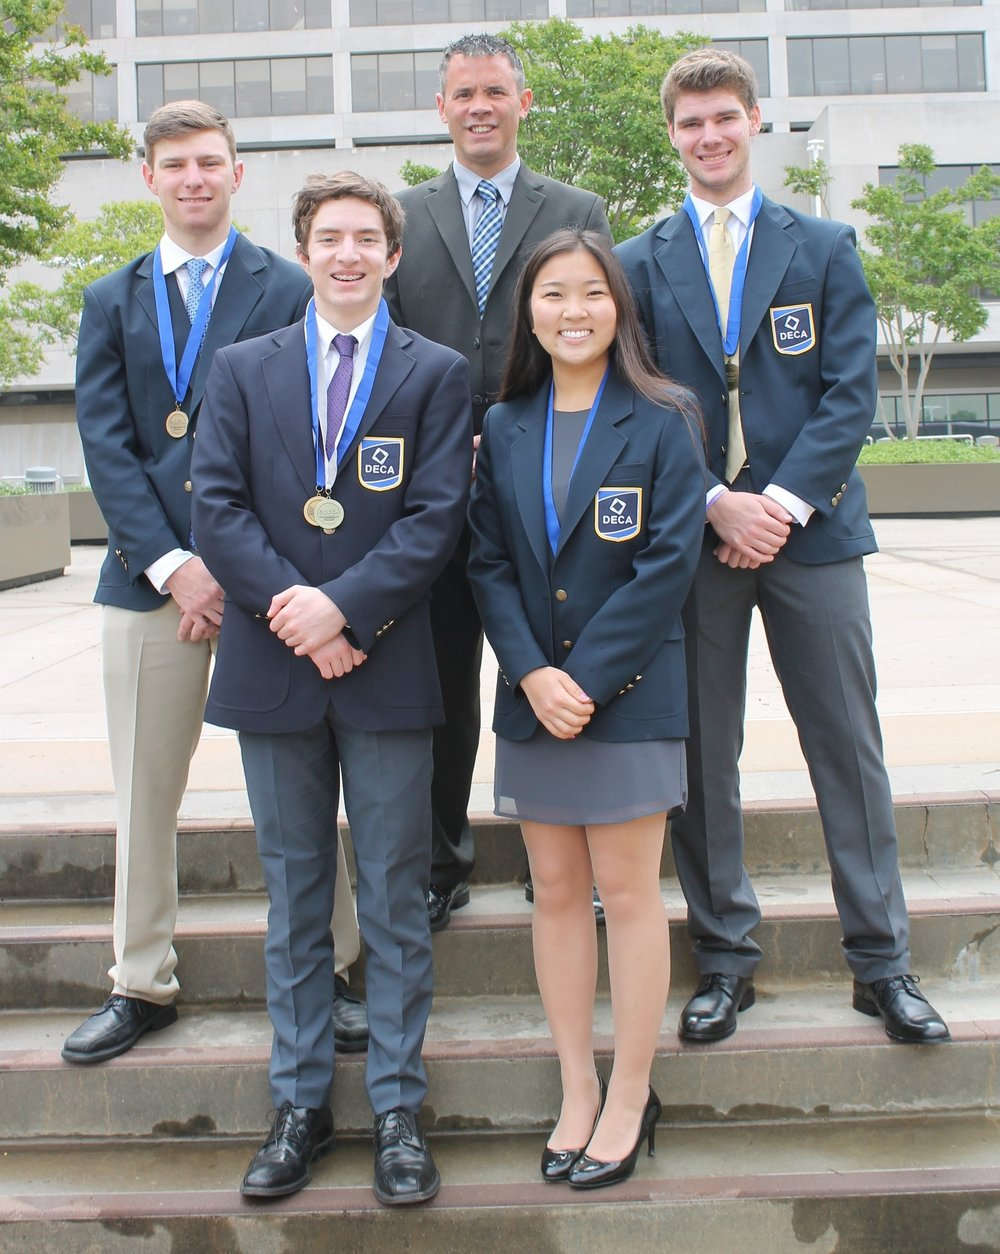 Adviser, Chris Gapinski, pictured with the four LHS DECA finalists.